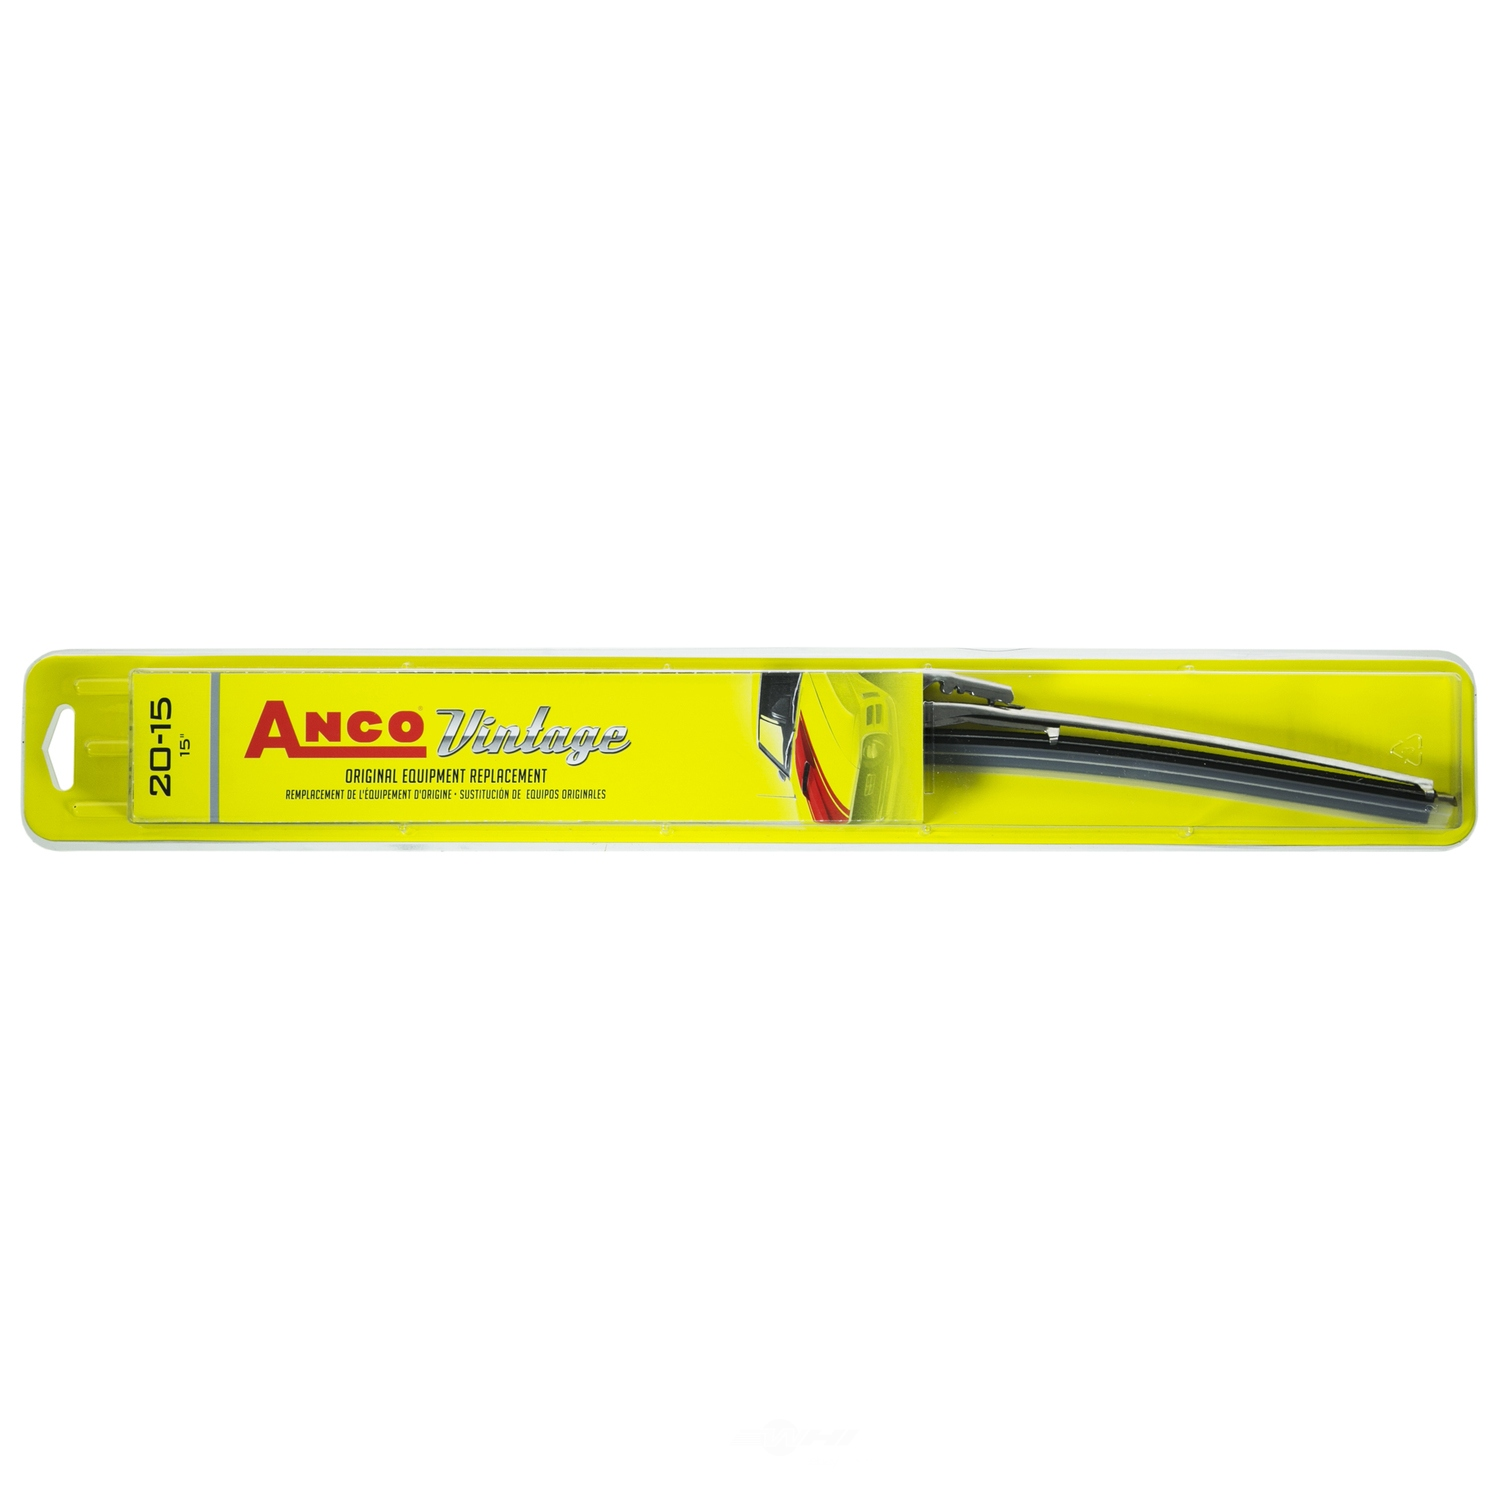 ANCO WIPER PRODUCTS - Vintage Wiper Blade - ANC 20-15